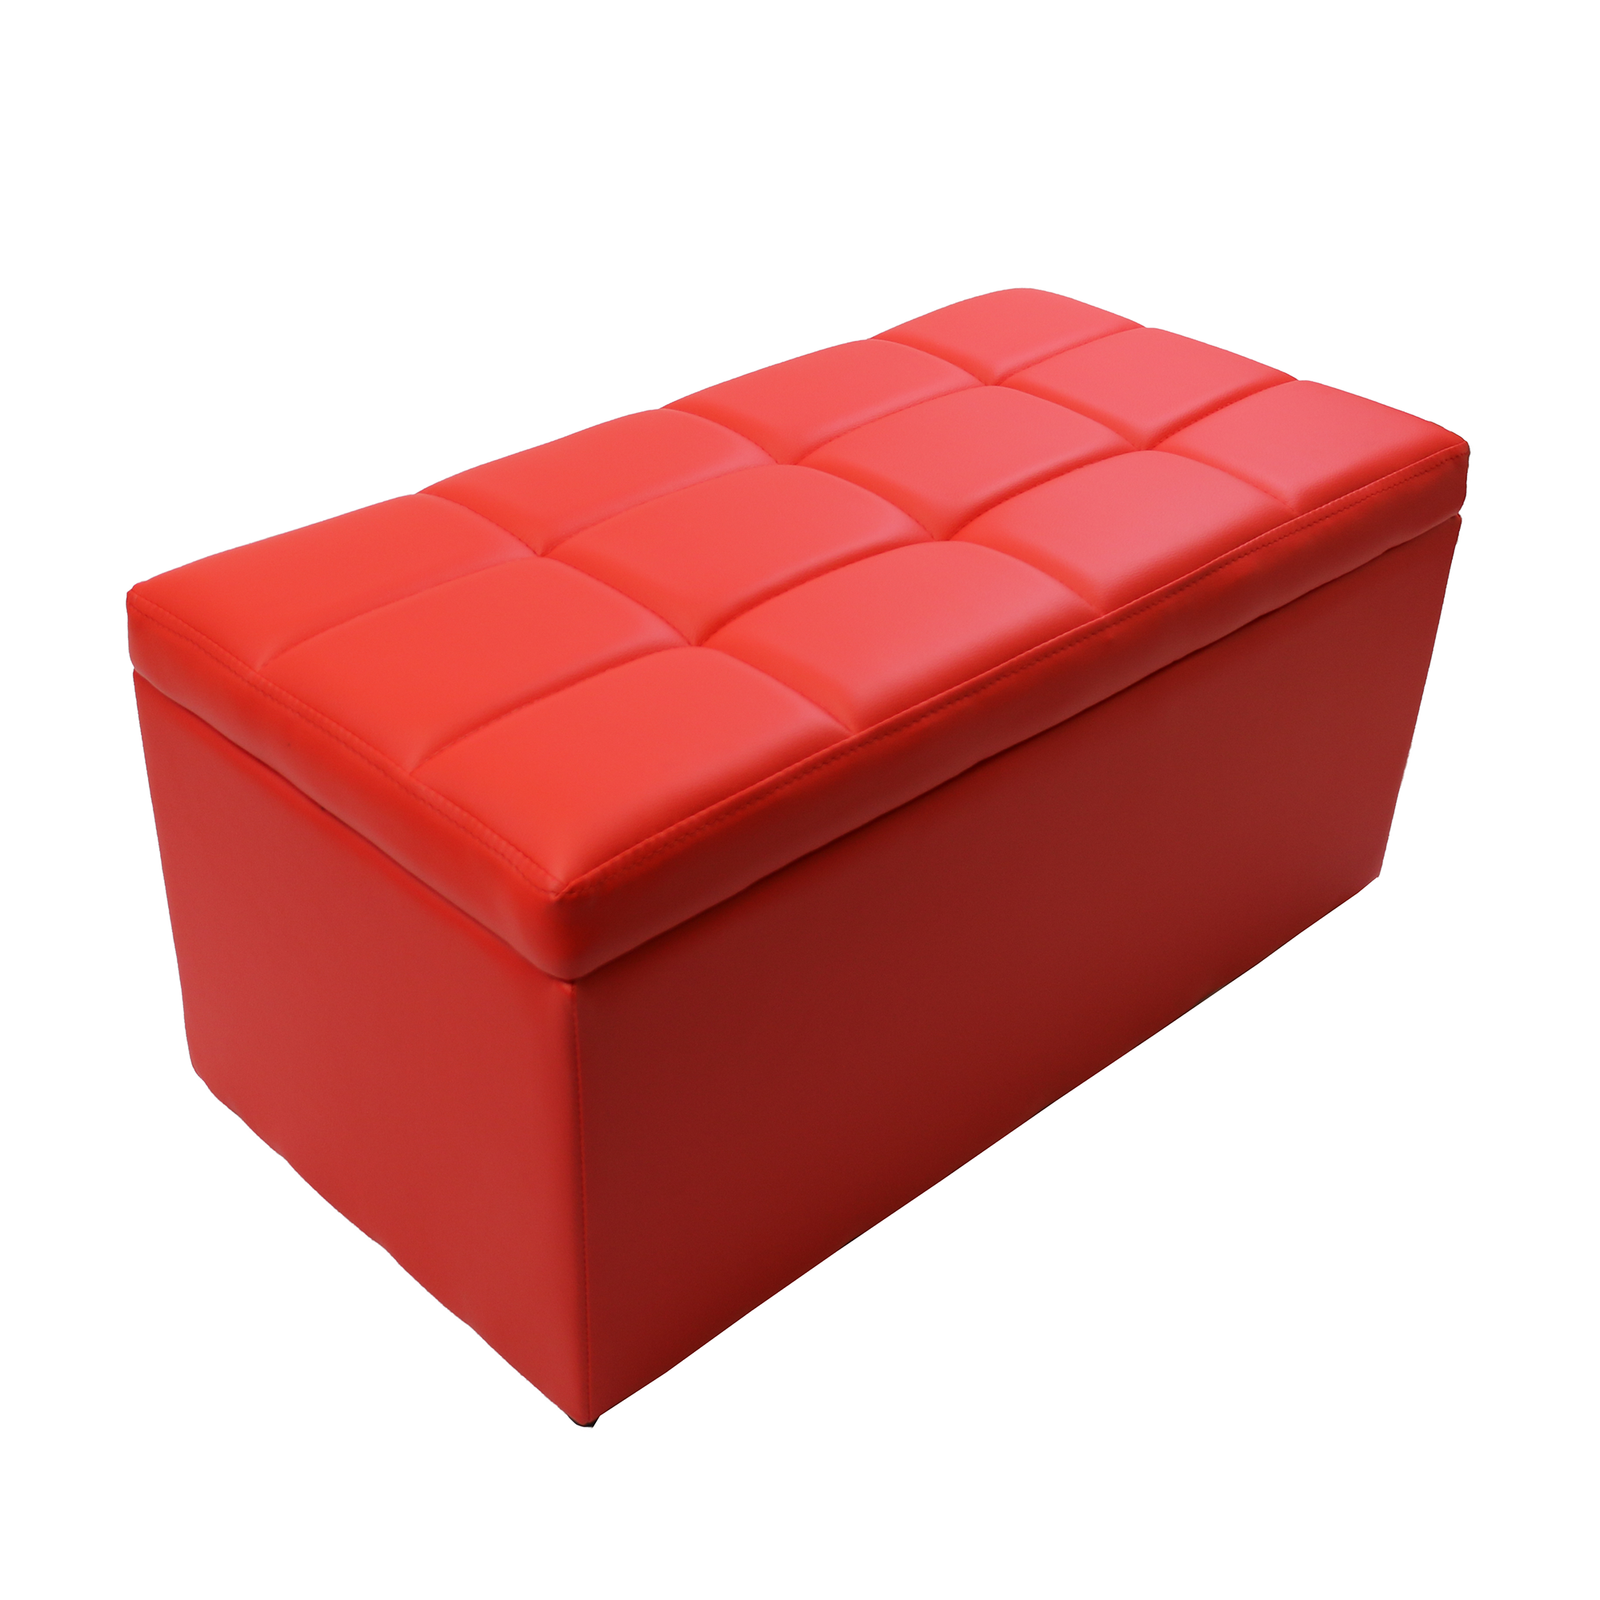 Elegant Rectangular Unfold Leather Storage Ottoman Bench 7 Color